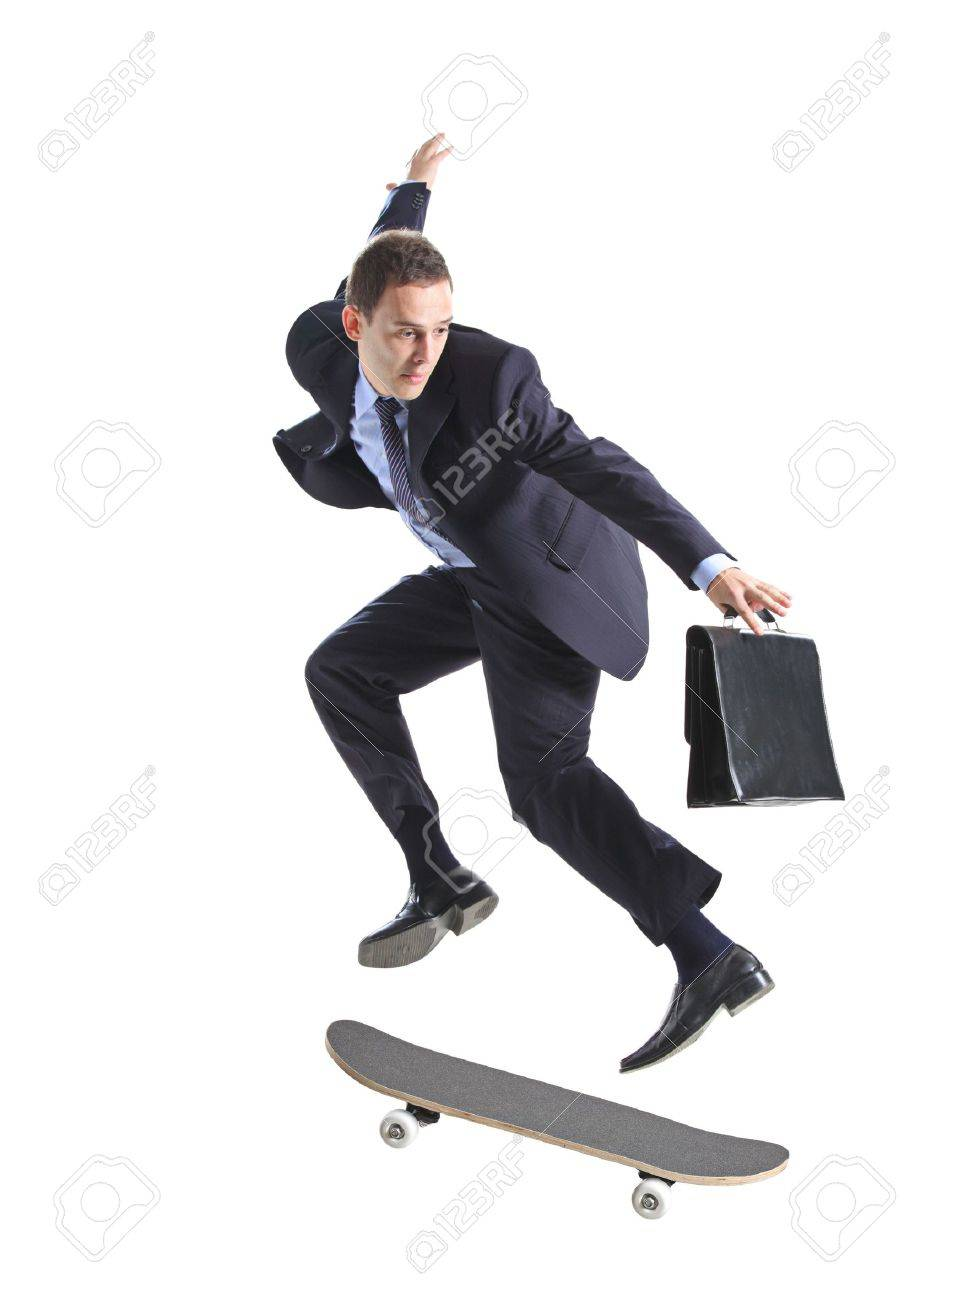 A businessman with skateboard jumping isolated on a white background Stock Photo - 5915204